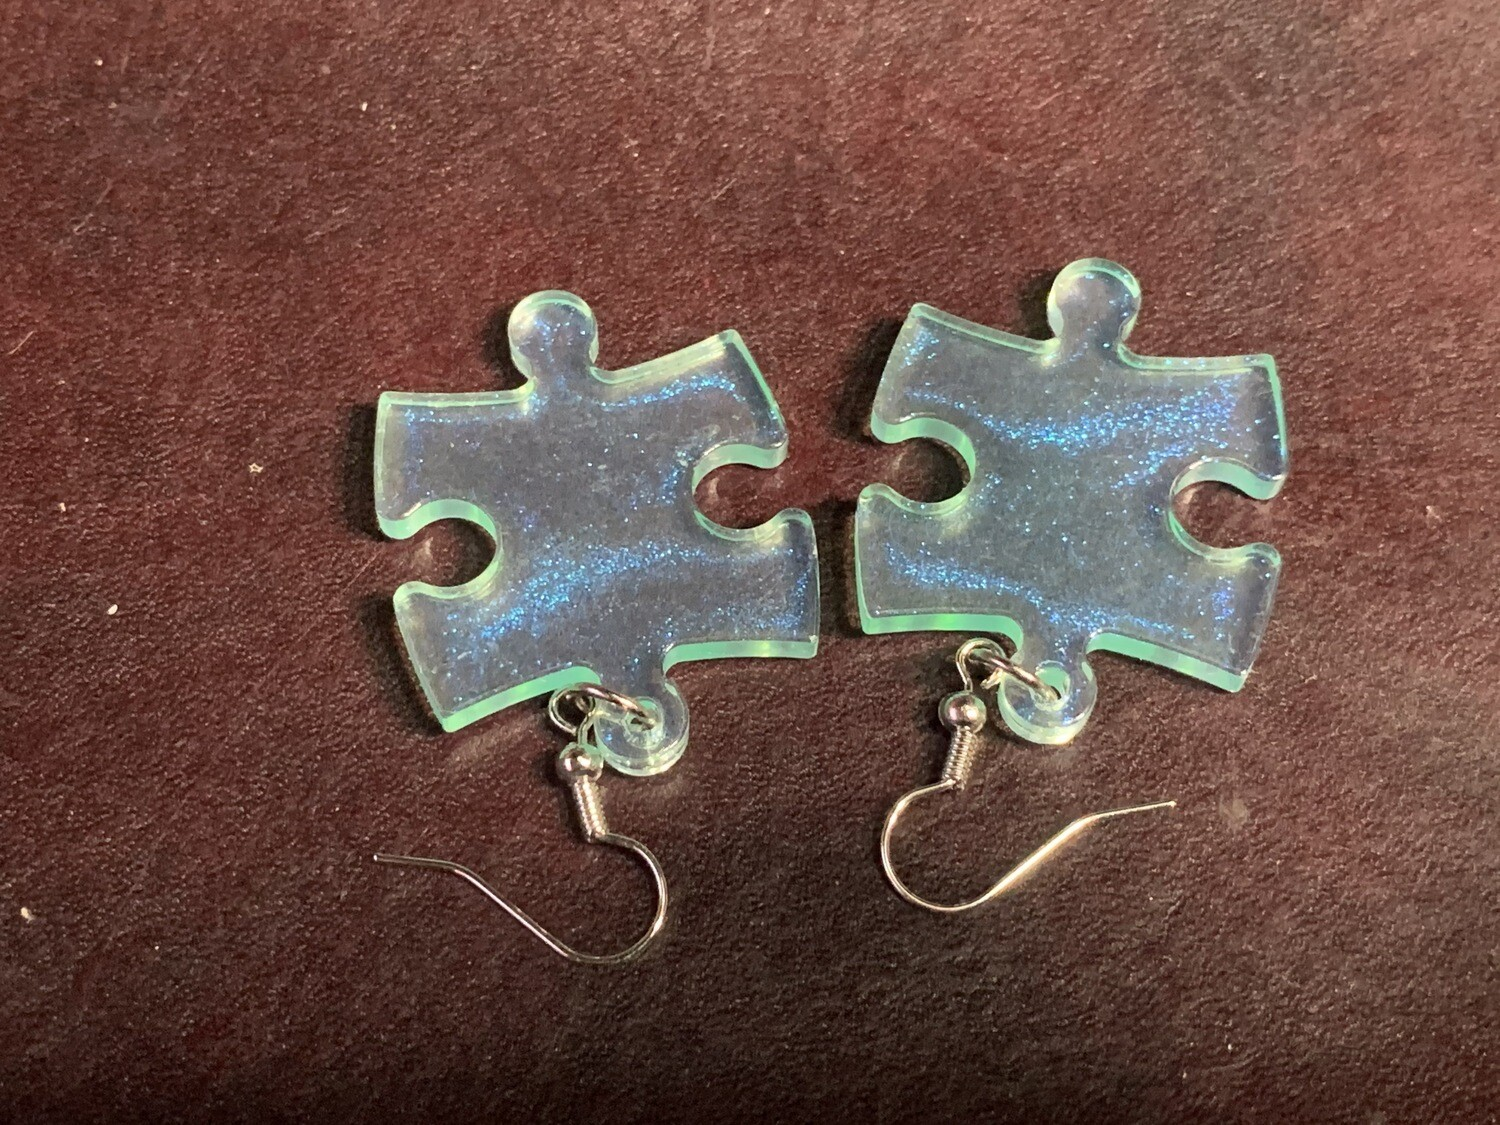 Puzzle Piece Puzzle Earrings - Chessex Dice Style Borealis - Green